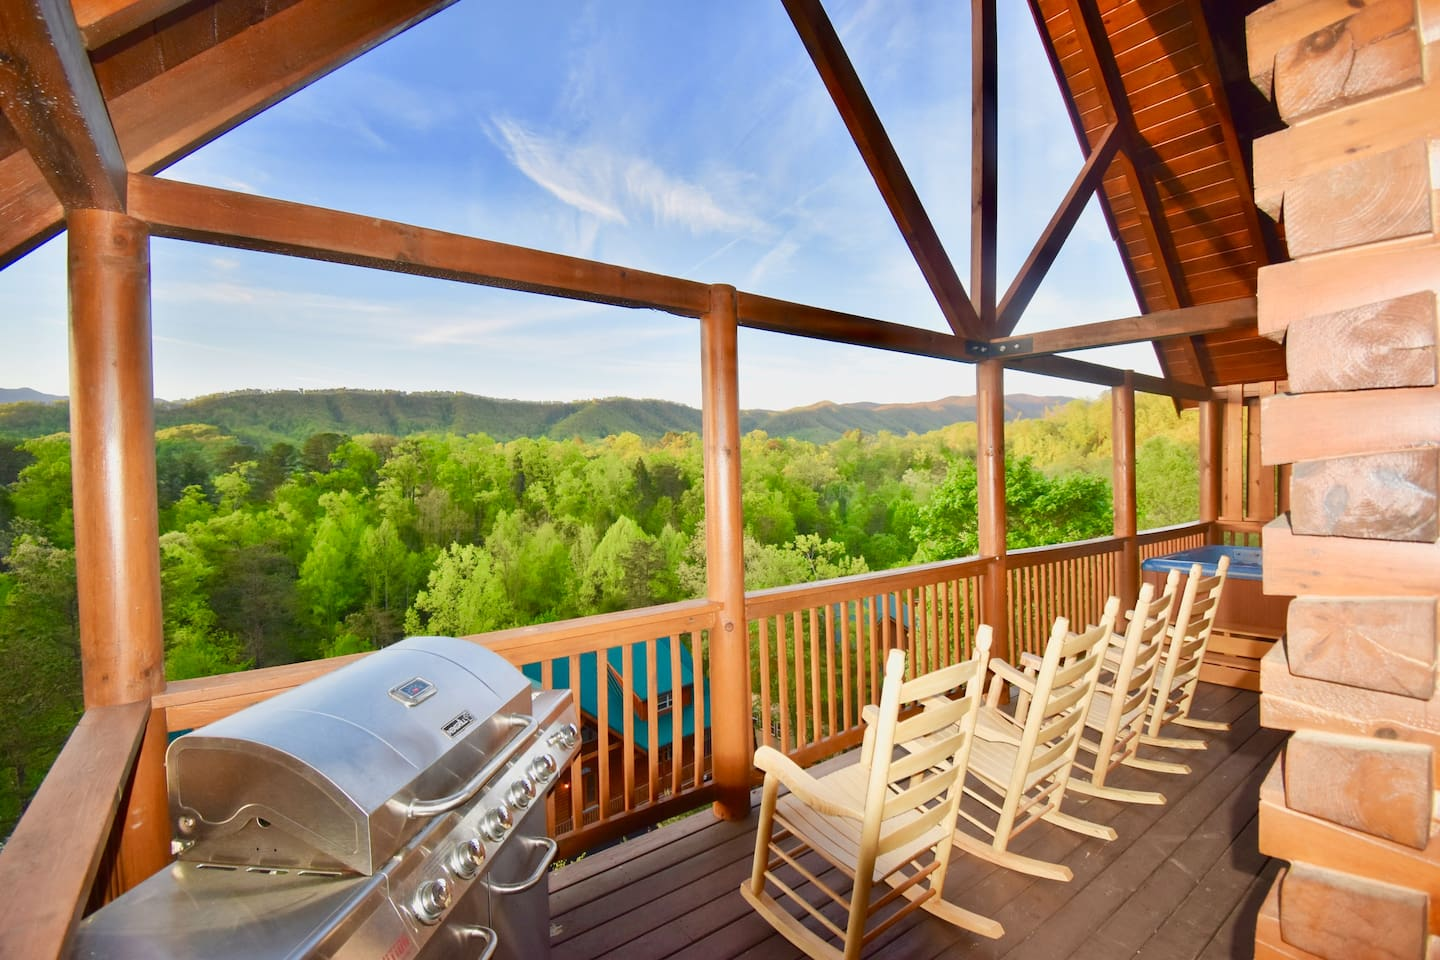 This is the view from the back deck overlooking stunning Mt Leconte.Relax in the hot tub or barbecue with family and friends while gazing over majestic mountains like no other